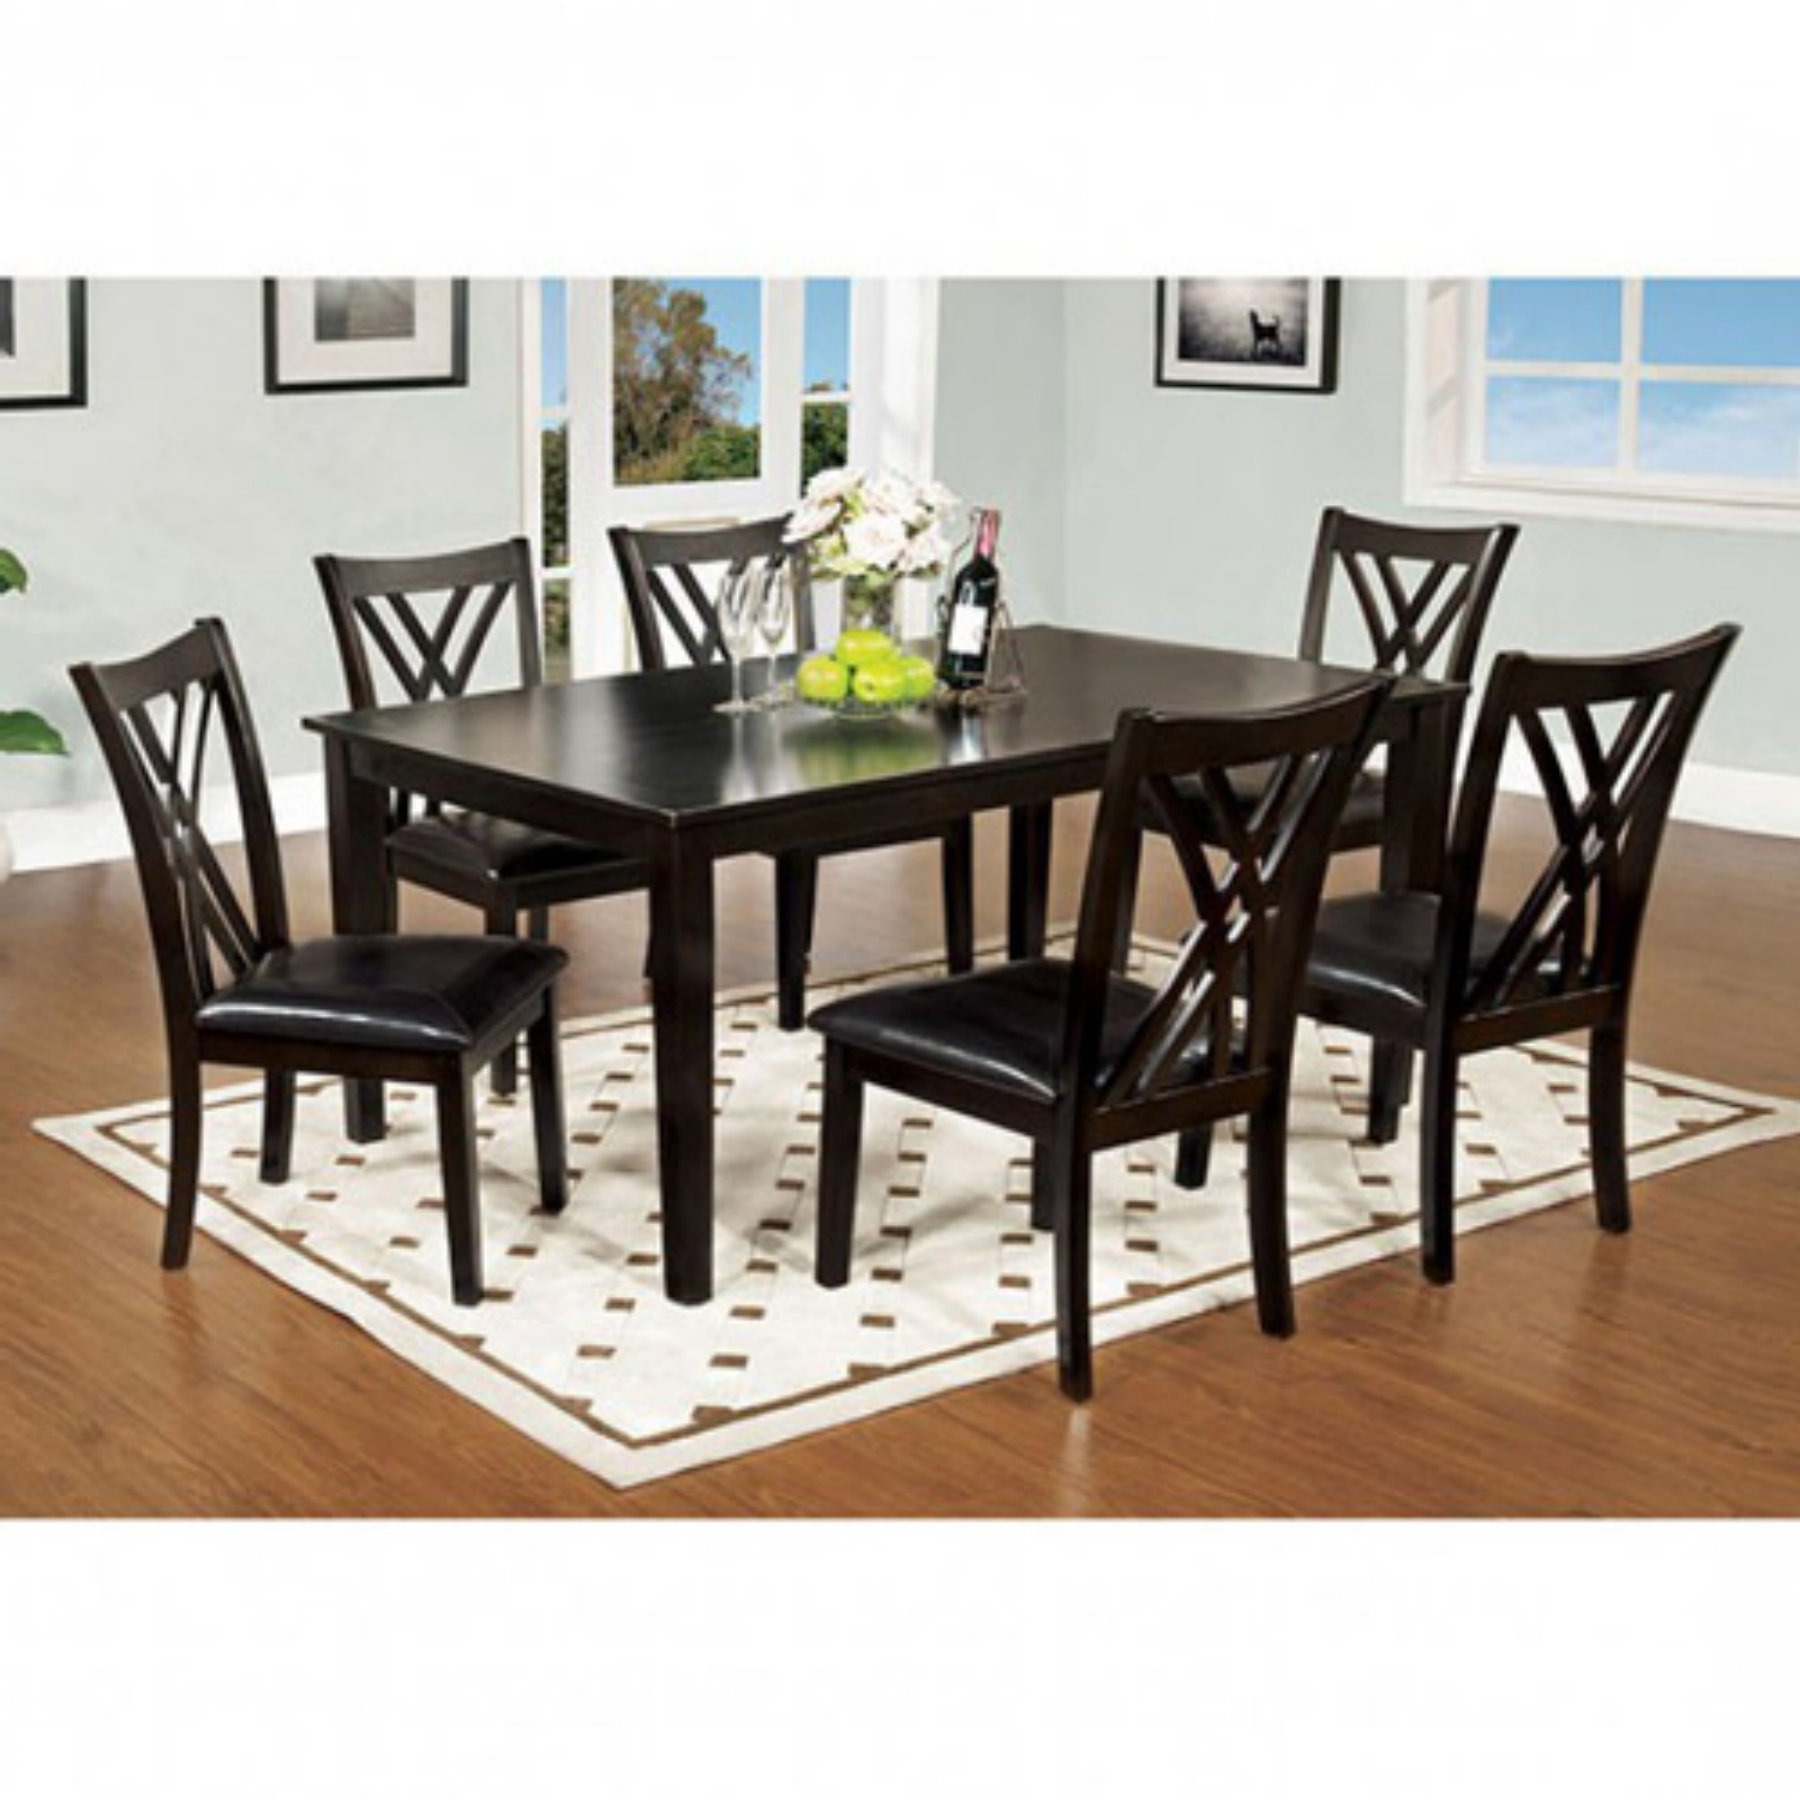 Most Recently Released Craftsman 7 Piece Rectangle Extension Dining Sets With Side Chairs Regarding Benzara Springhill Enticing 7 Piece Rectangular Dining Table Set In (View 18 of 25)